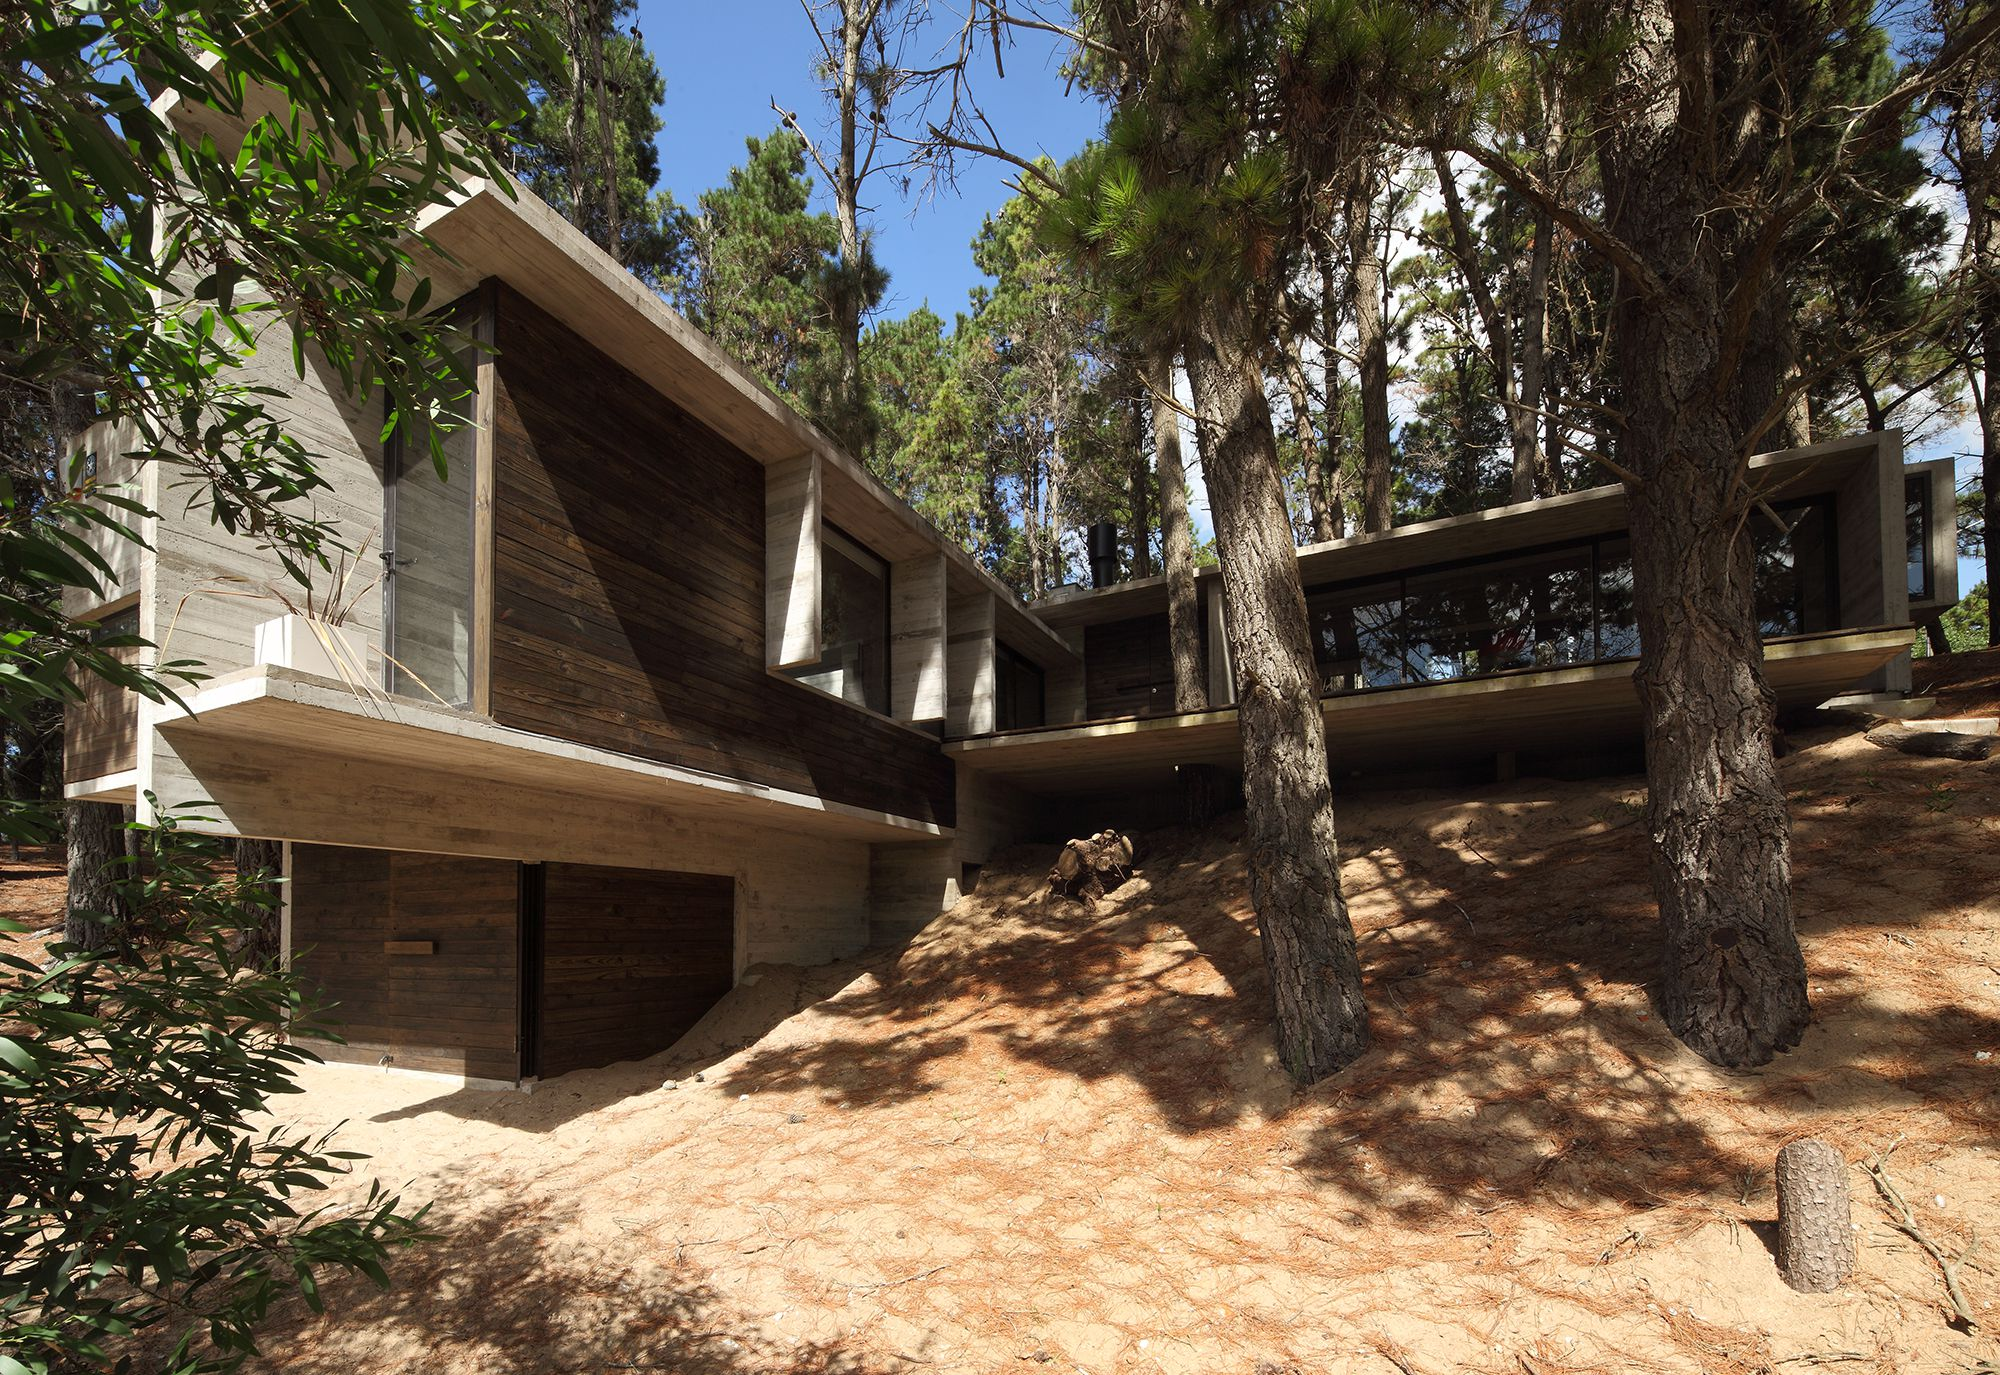 House BB by María Victoria Besonías and Luciano Kruk - CAANdesign | Architecture and home design blog